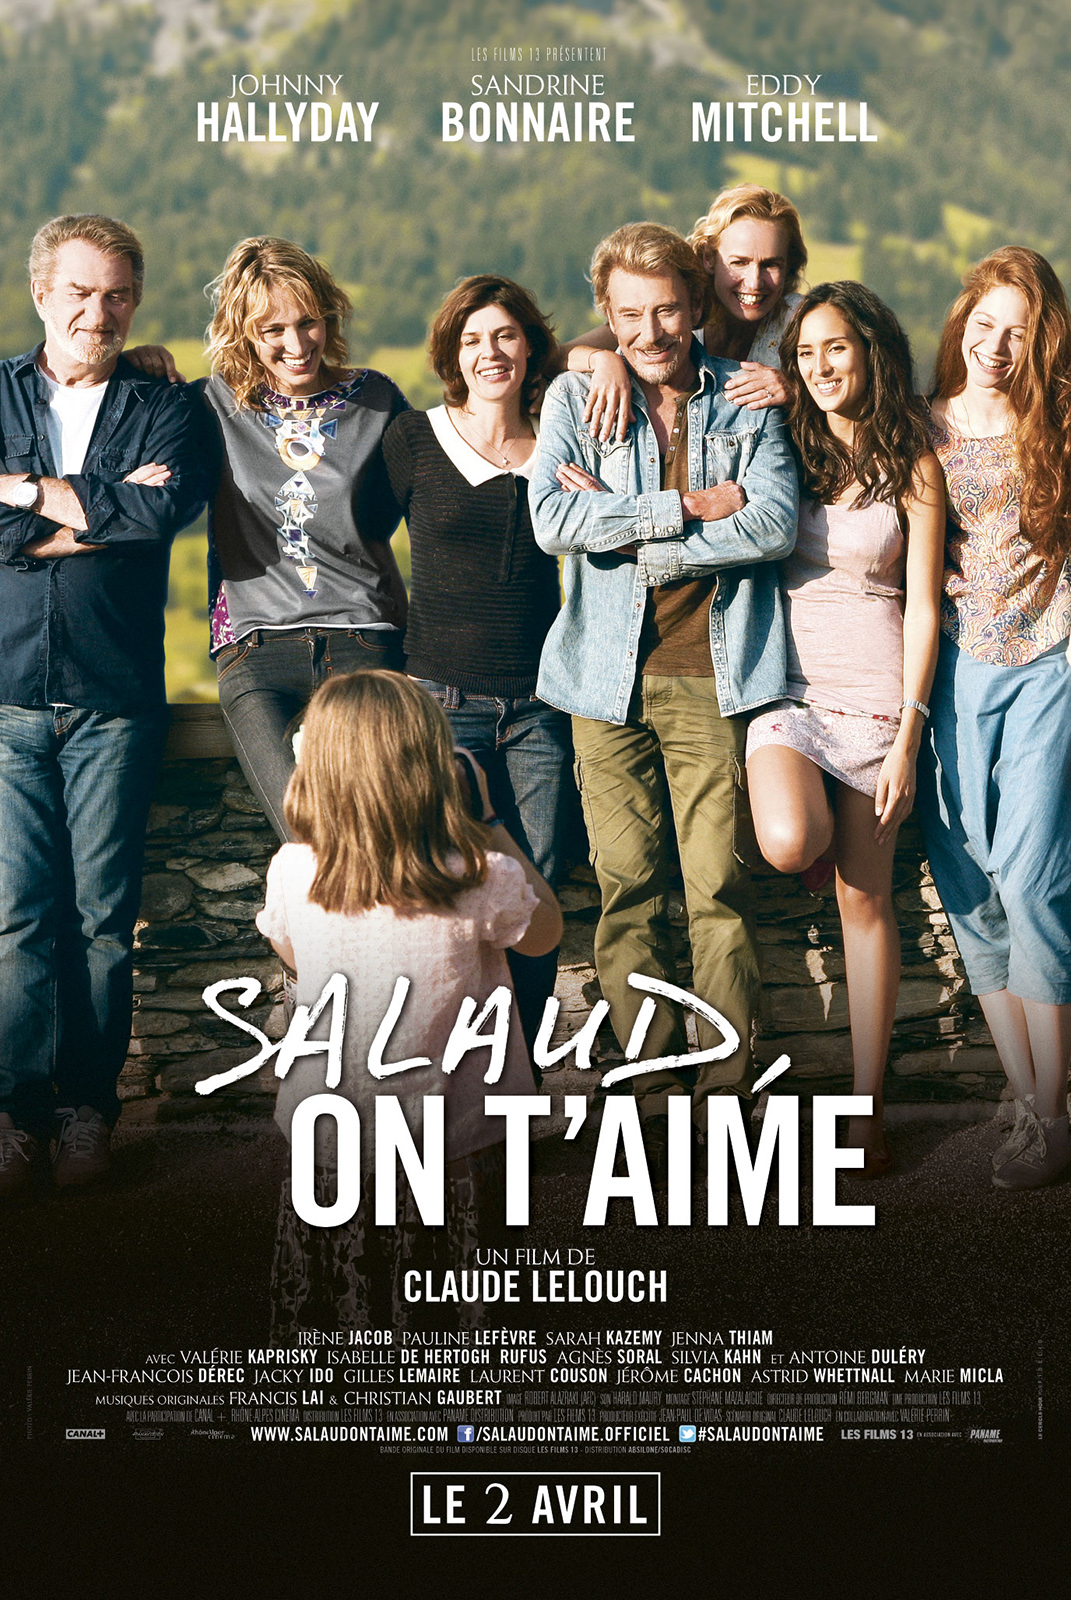 """Salaud on t'aime"""